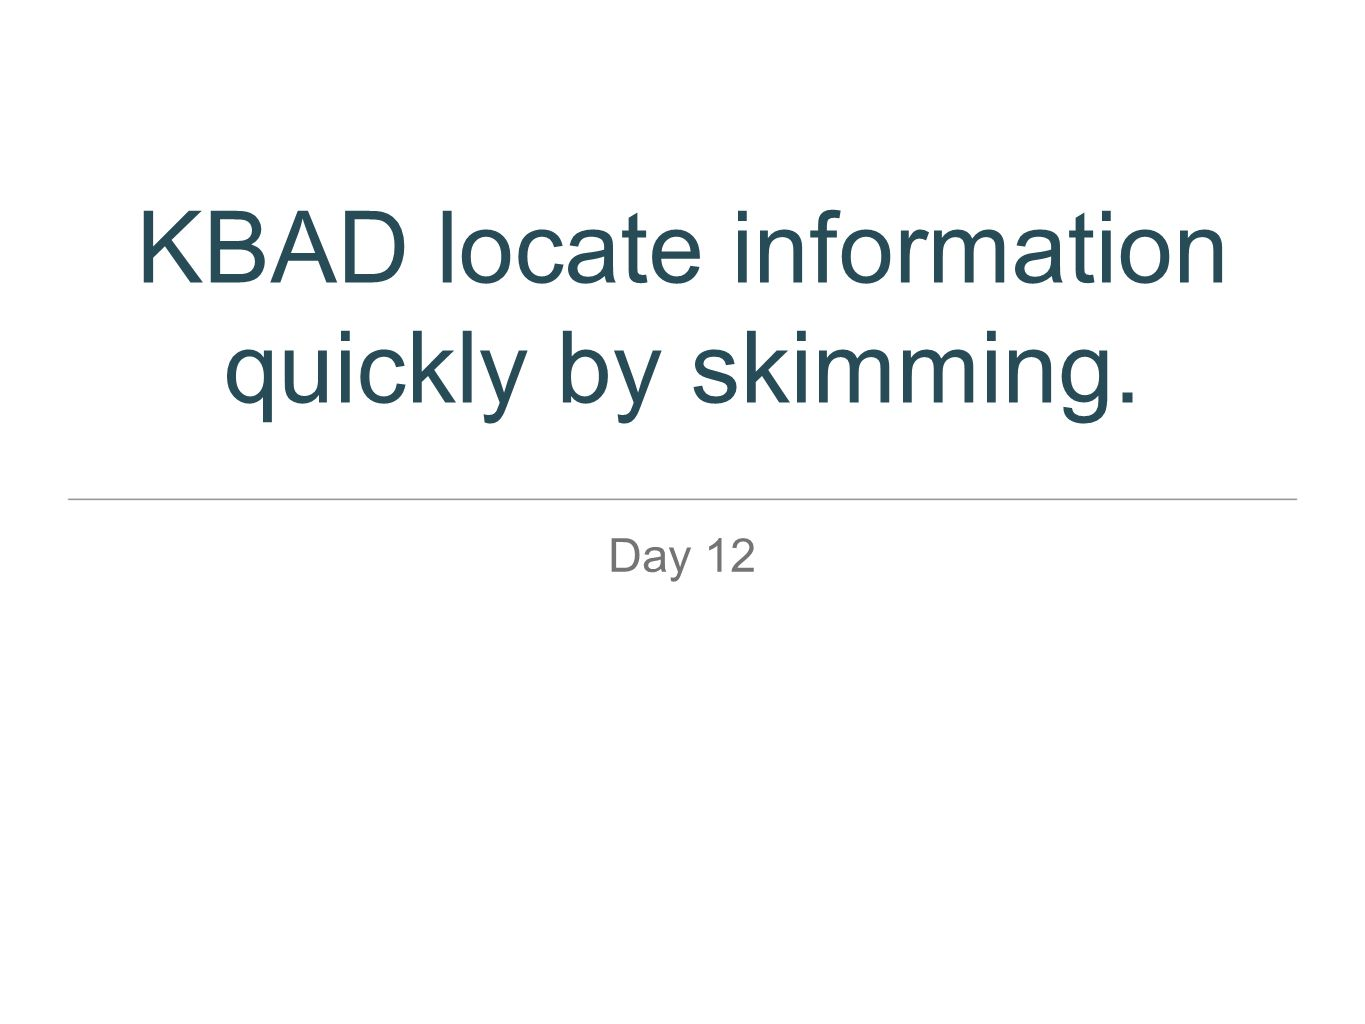 KBAD locate information quickly by skimming.